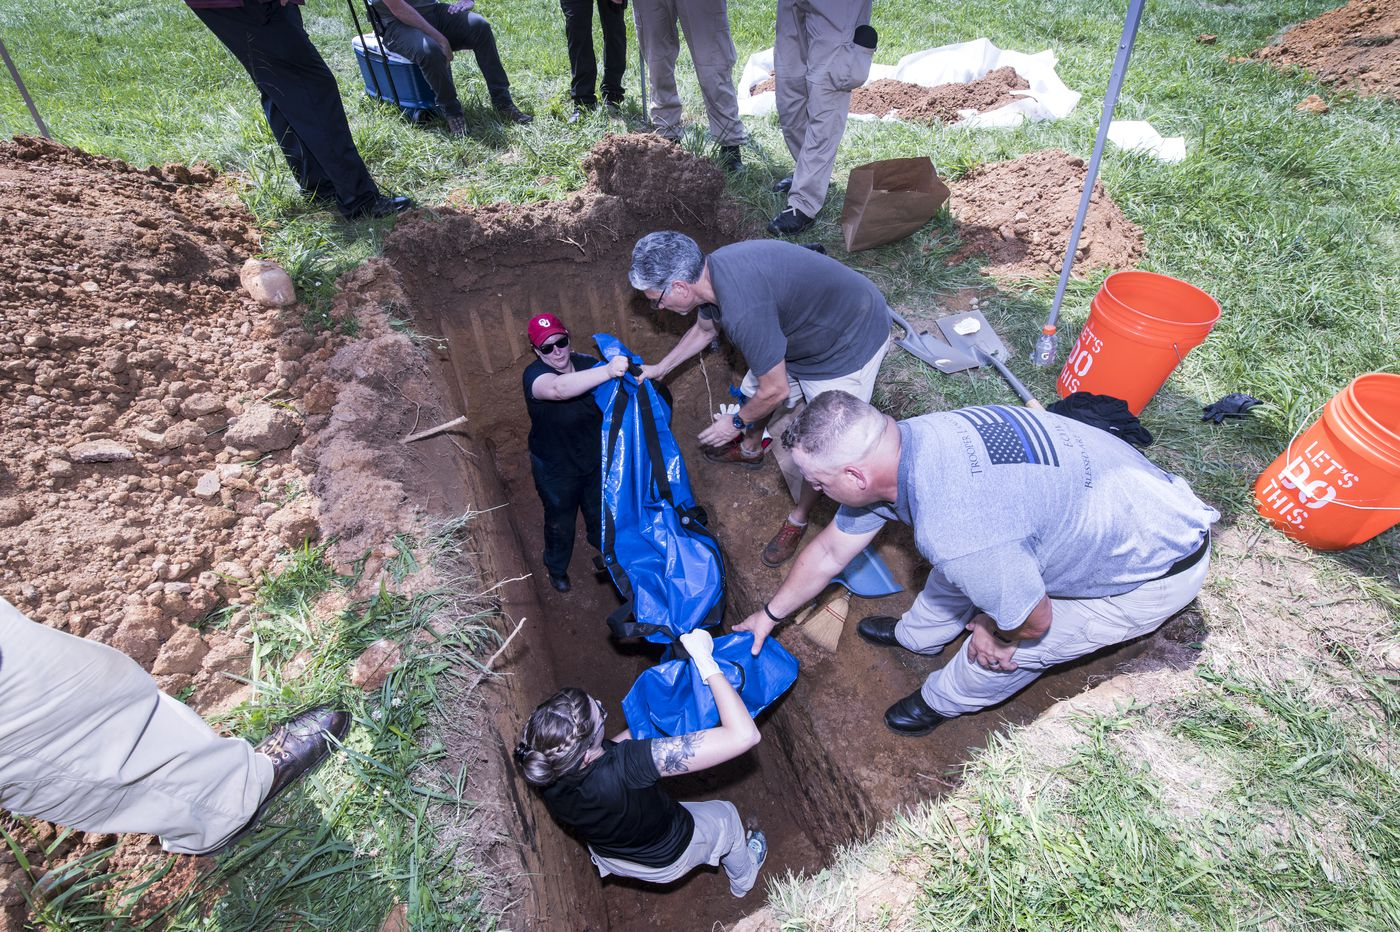 New mysteries unearthed at Philly's last potter's field, where the Boy in the Box once rested | Mike Newall